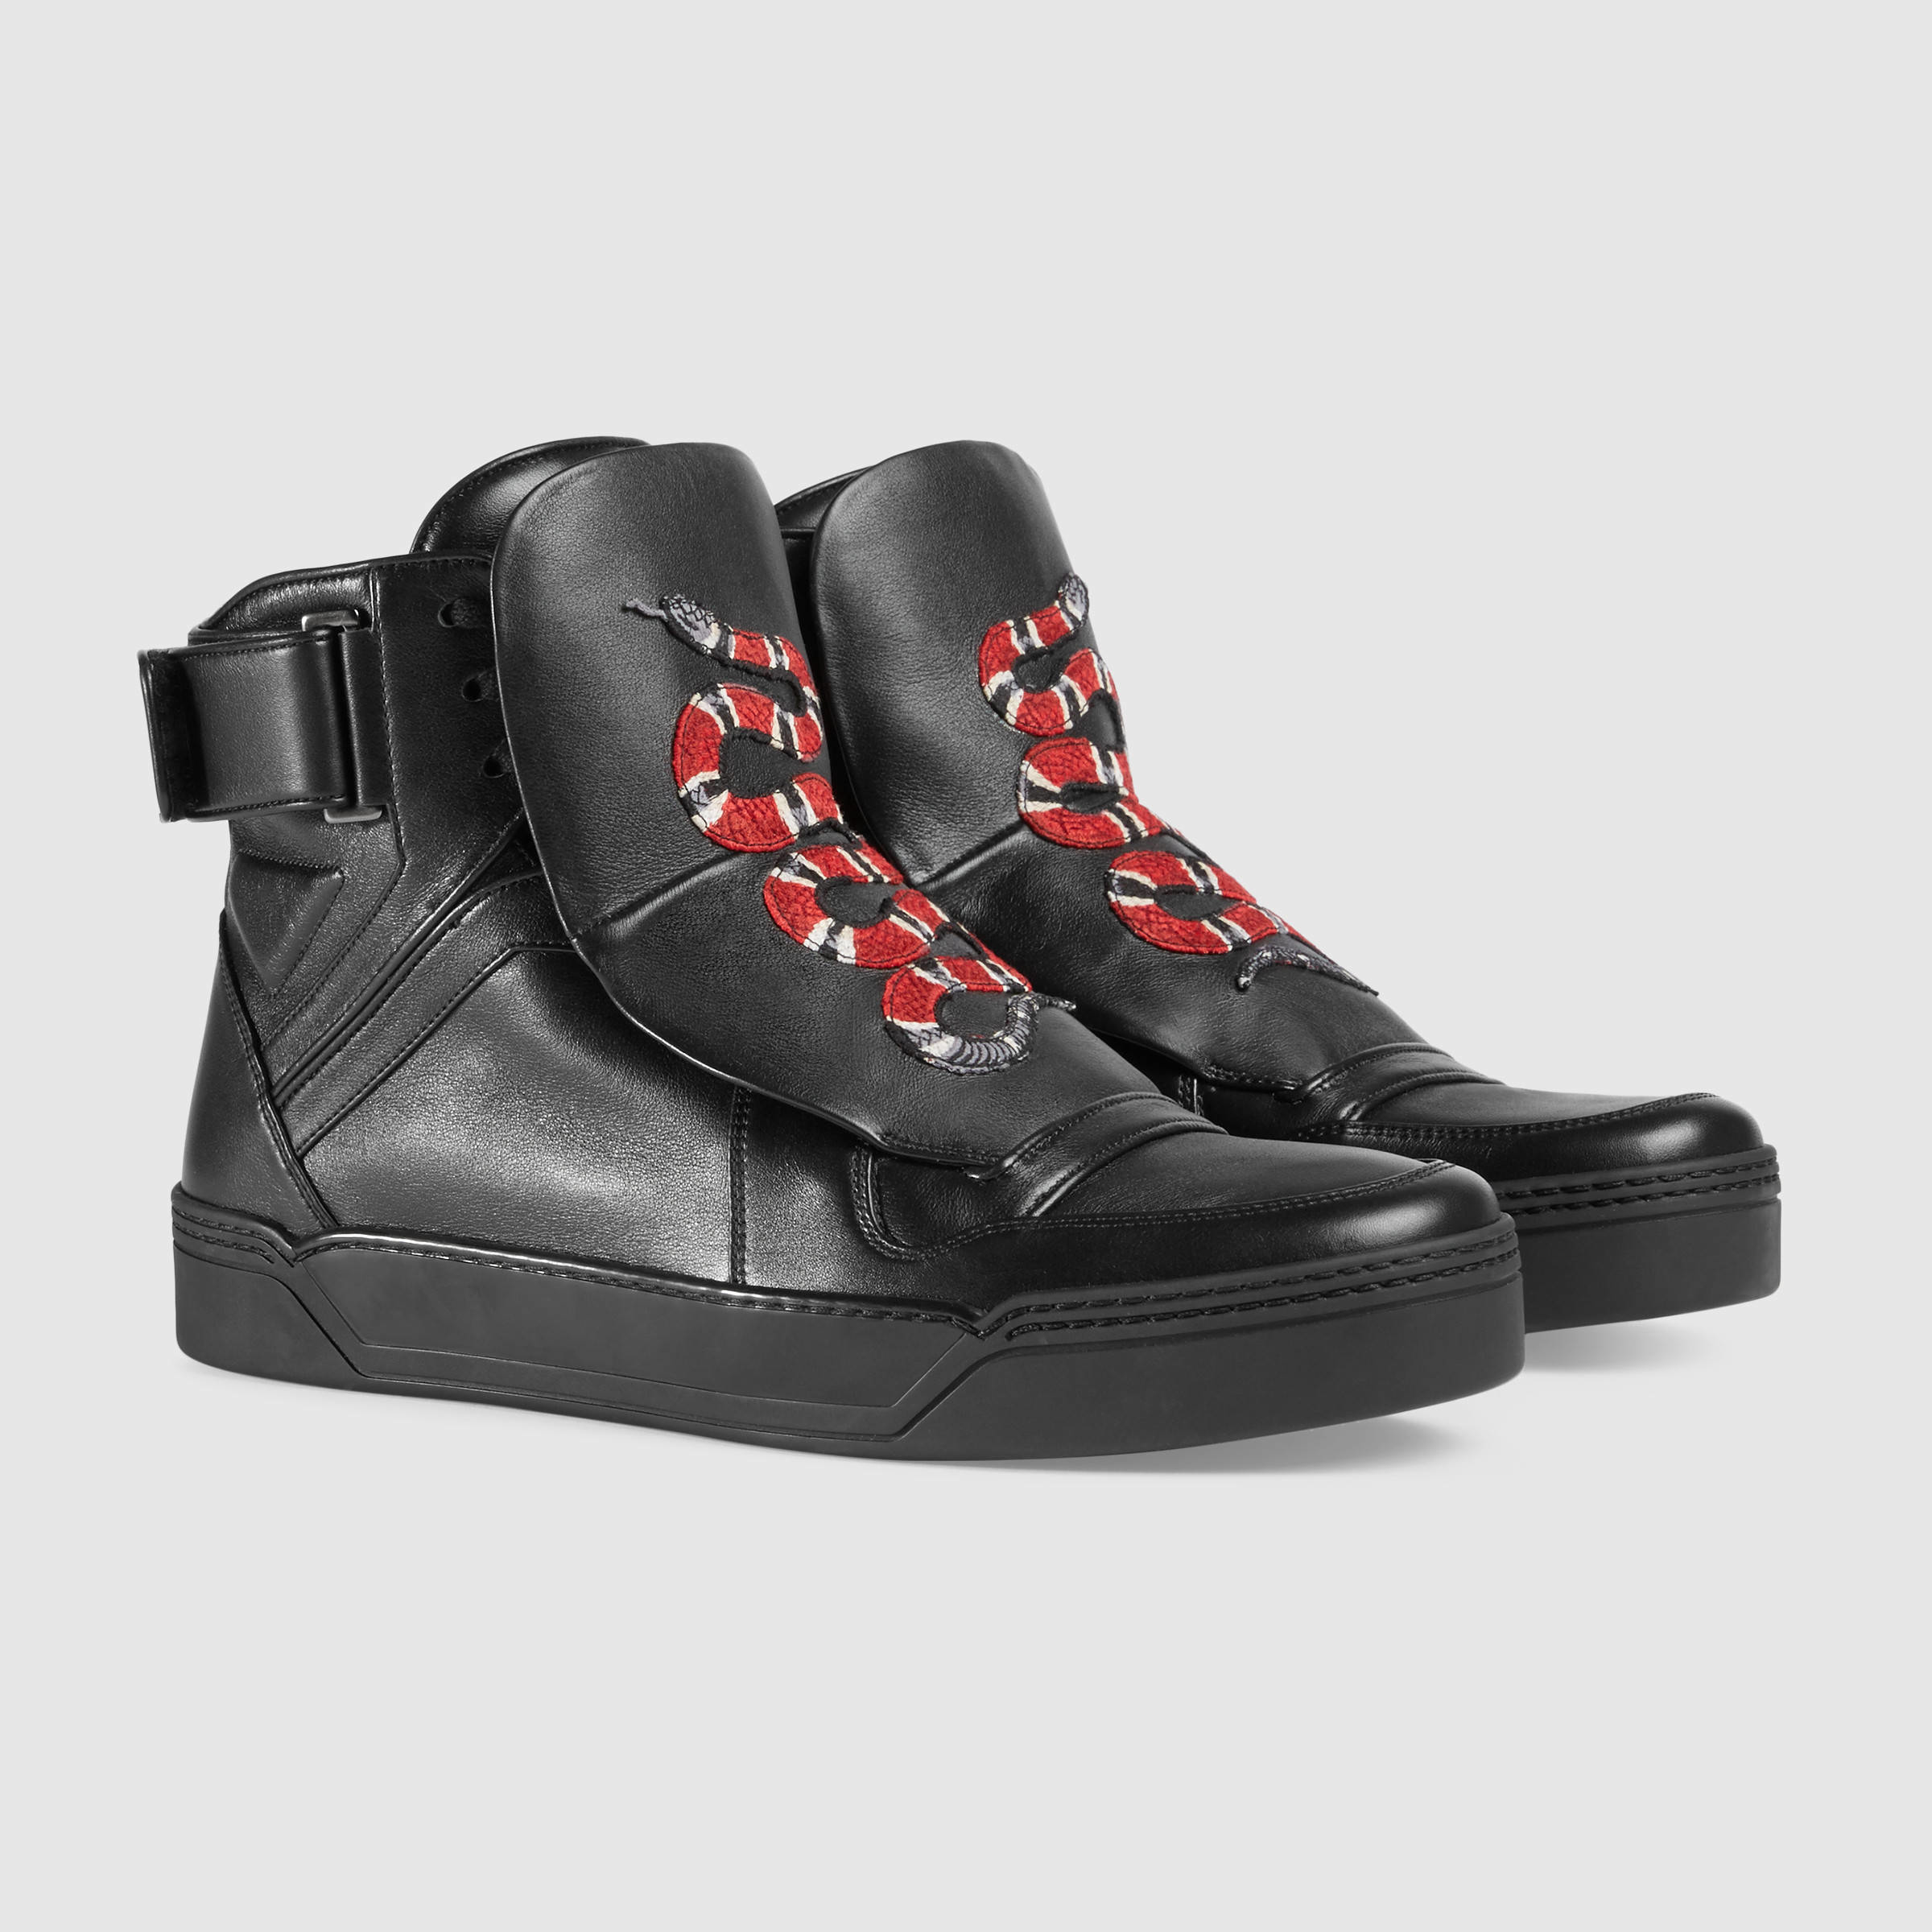 gucci shoes black snake. gallery gucci shoes black snake k